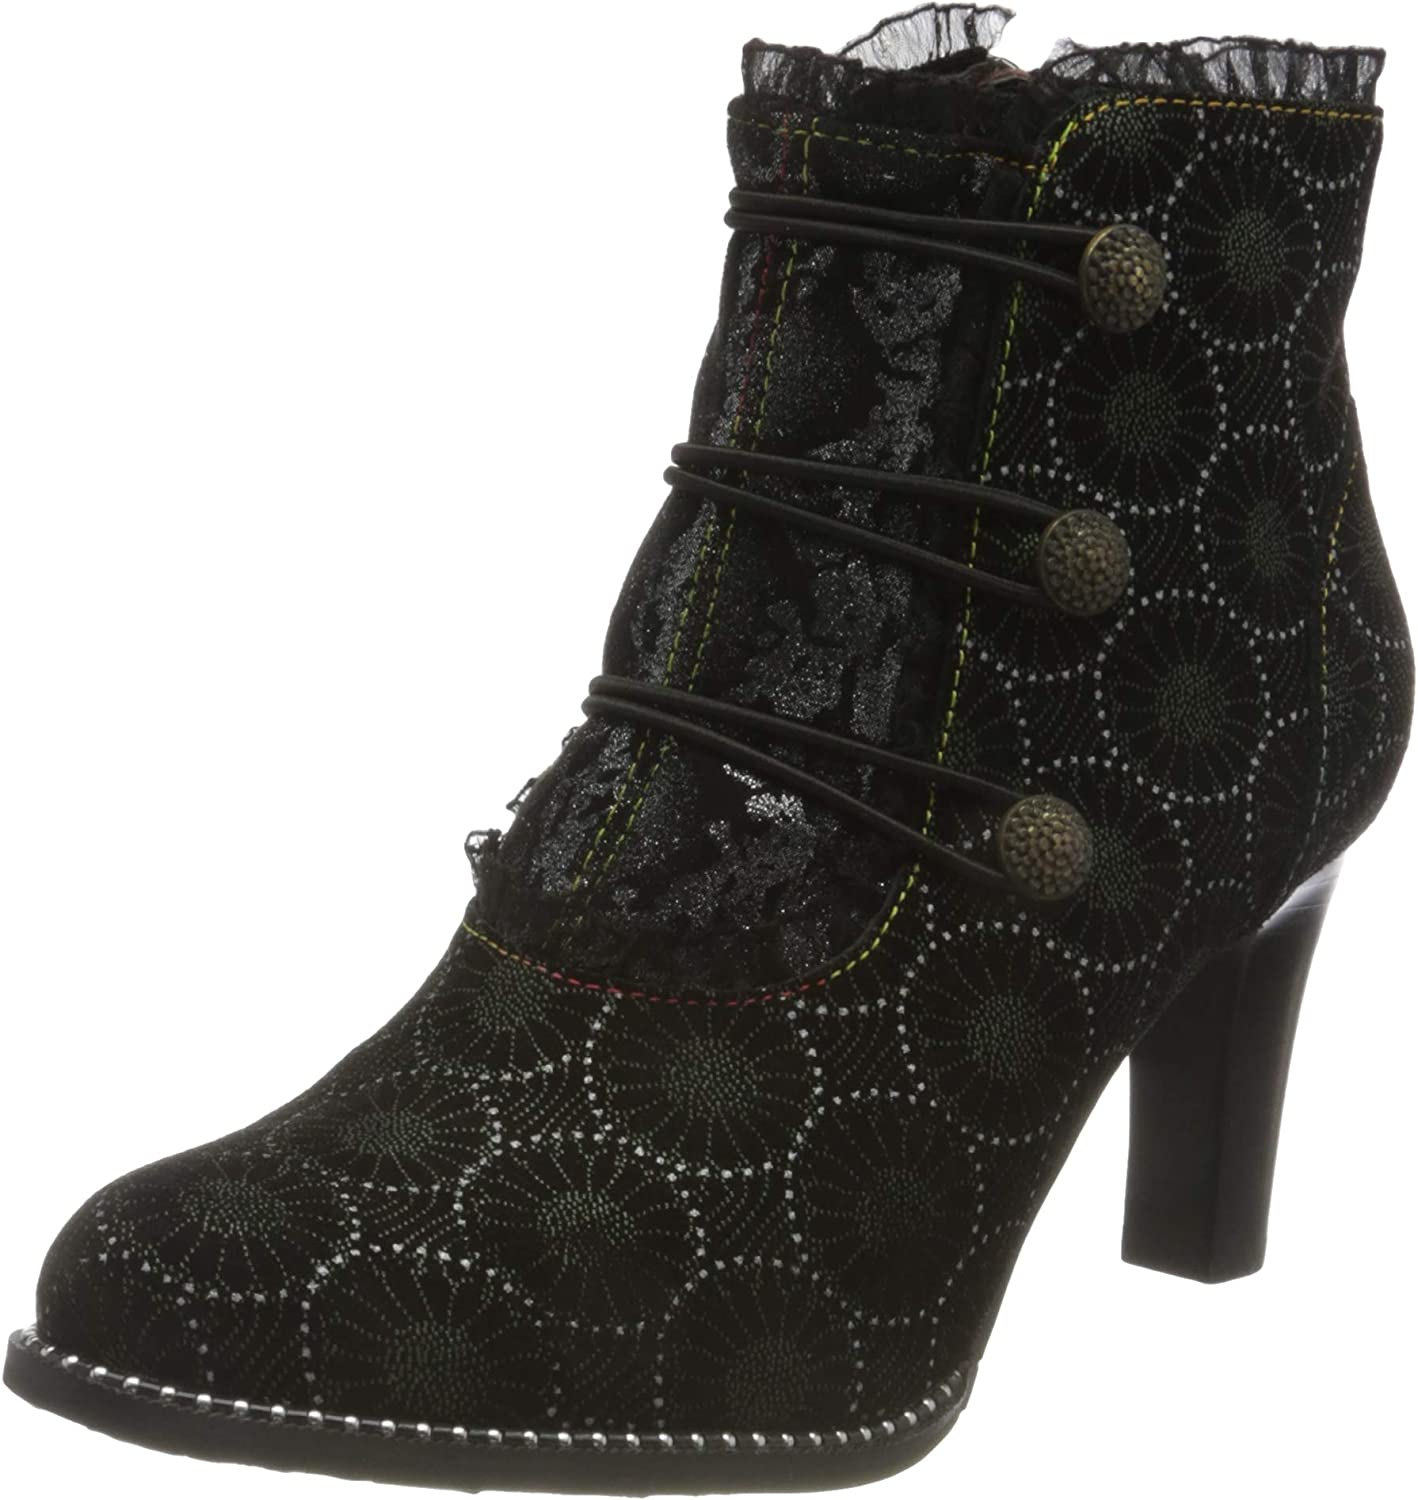 Laura Vita Women's Ankle Tulsa Mall Bootie High quality boot